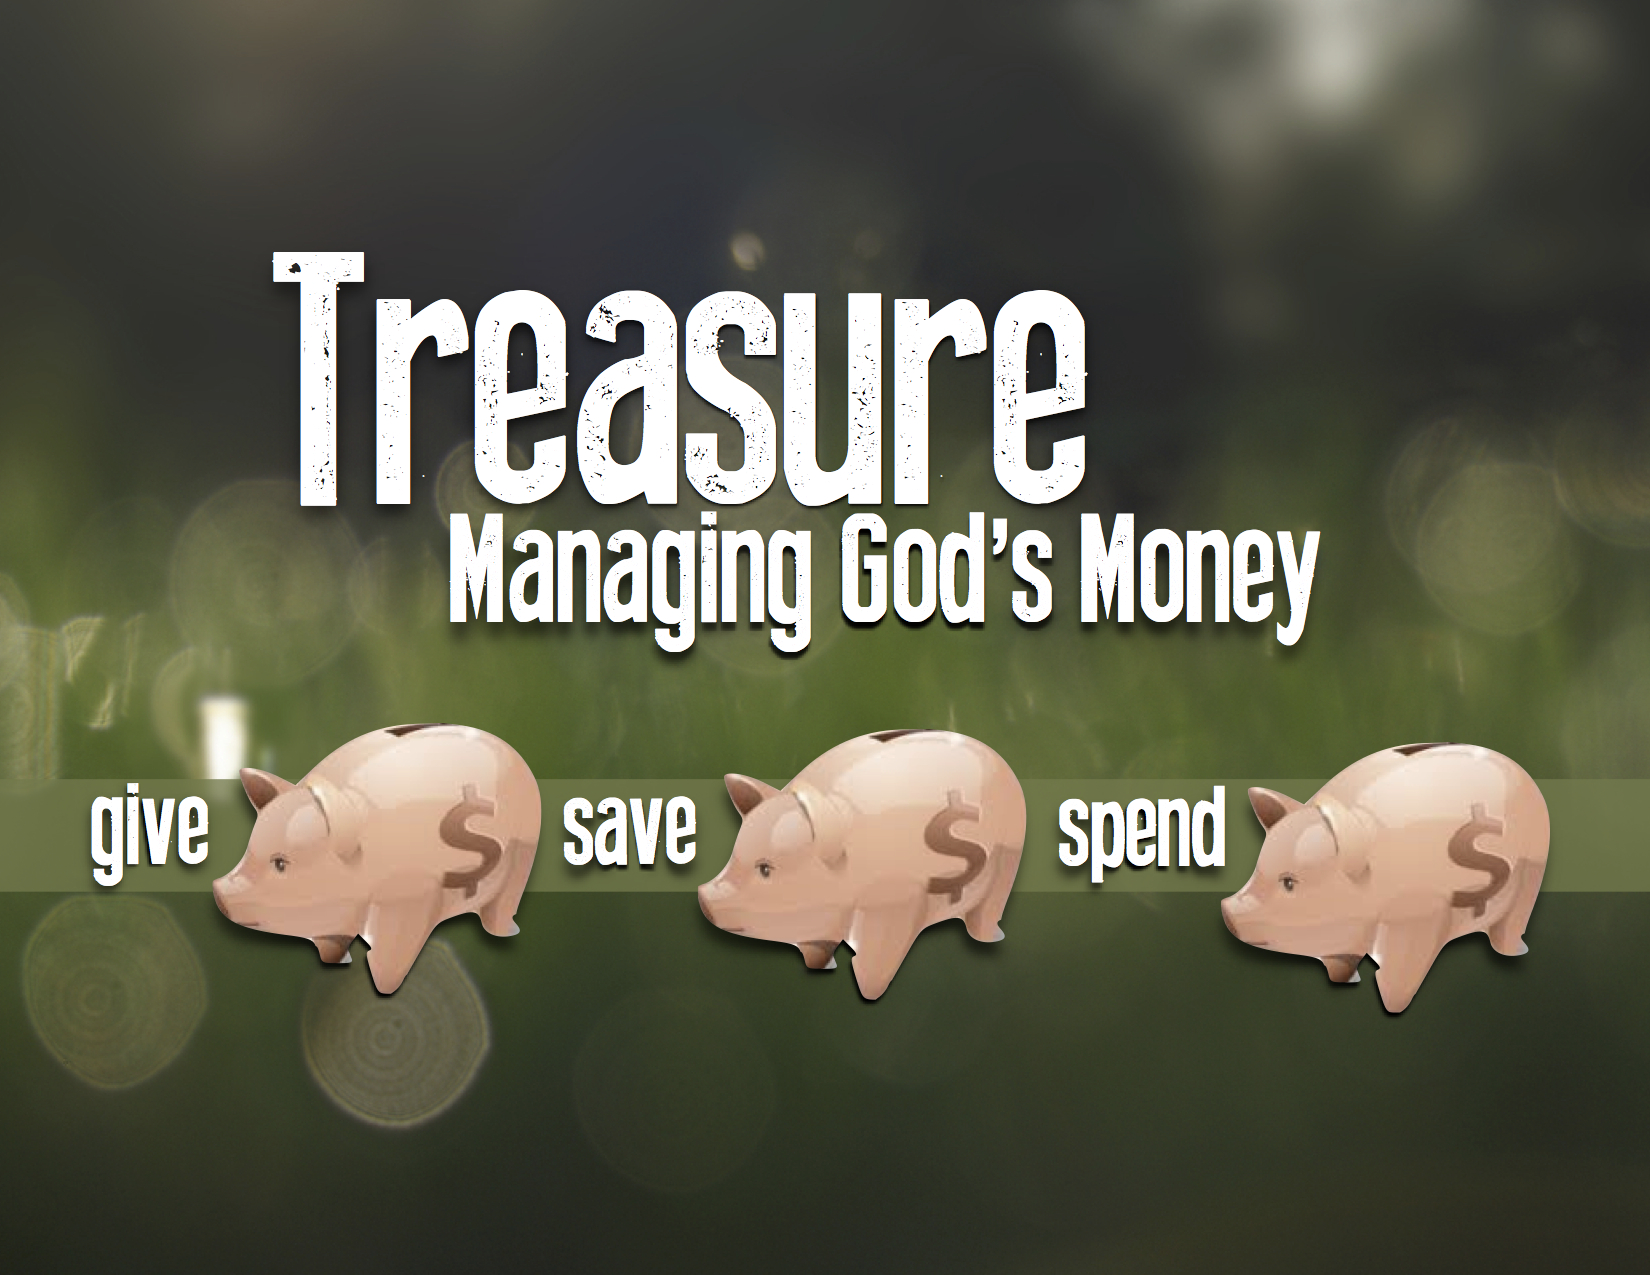 Treasure: Managing God's Money